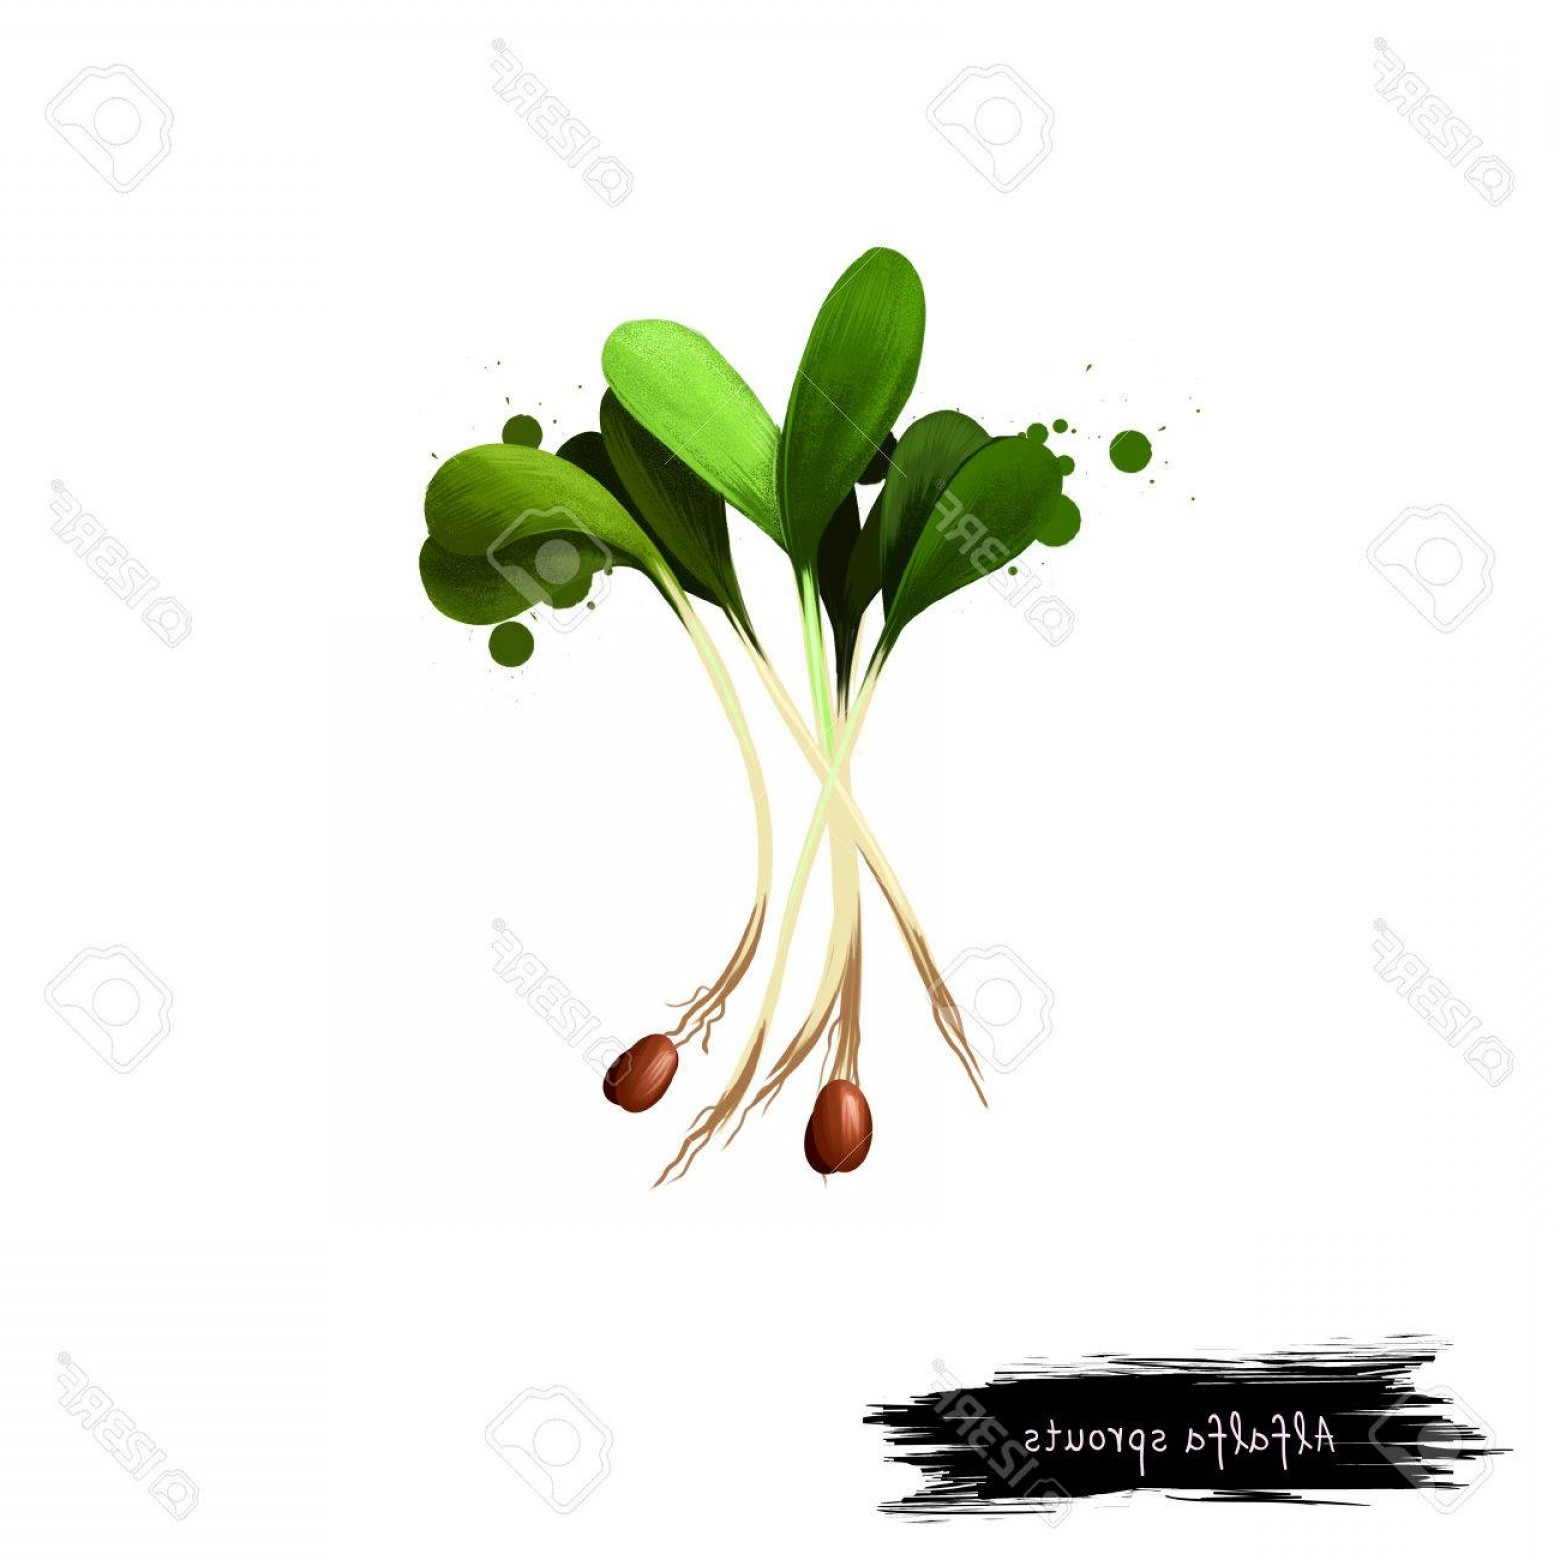 Alfalfa Sprouts Vector: Photostock Illustration Alfalfa Sprouts Medicago Sativa Or Lucerne Digital Art Illustration Isolated On White Organic Health